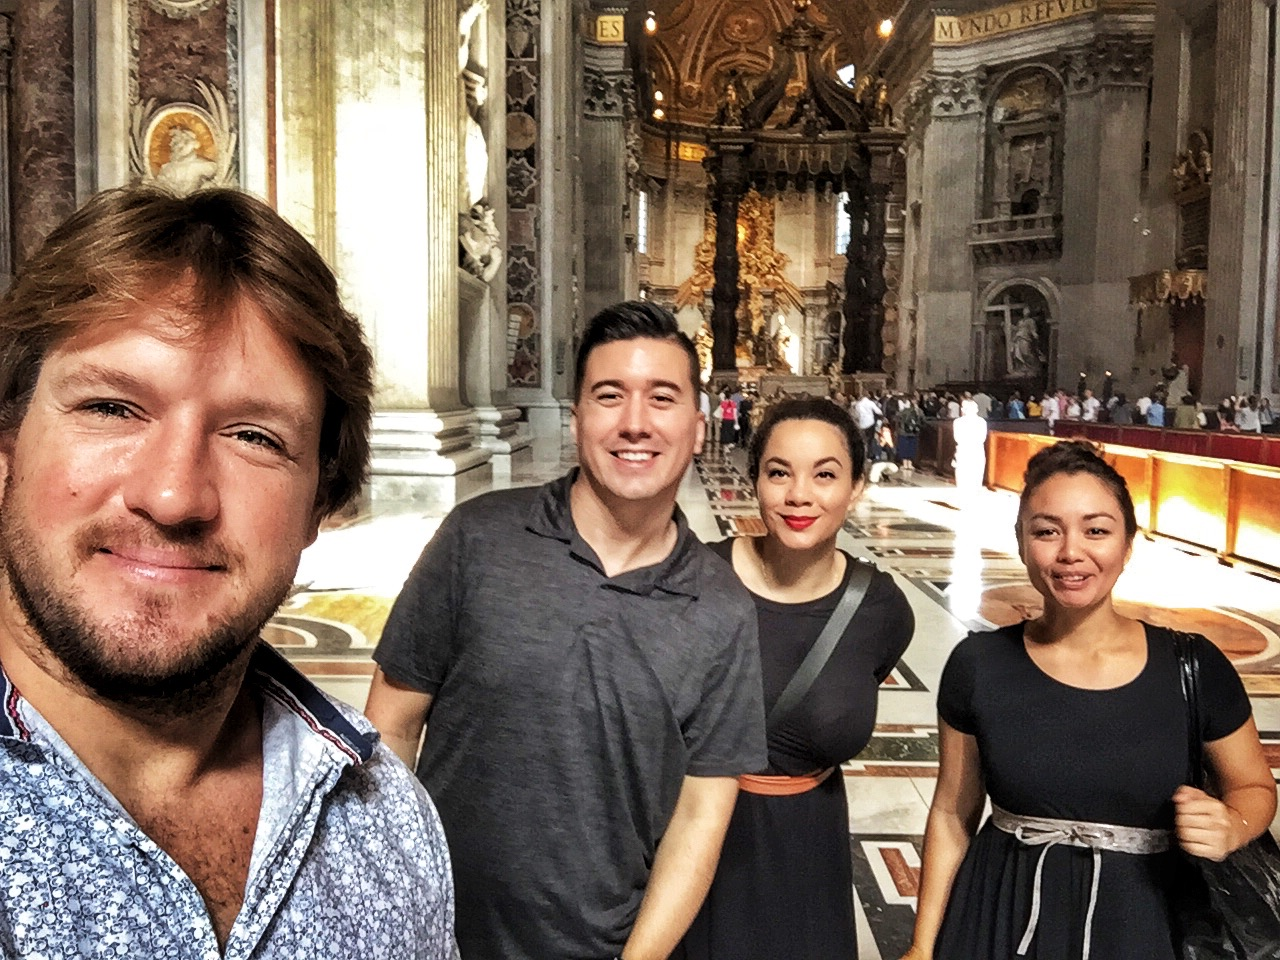 One last selfie before exiting the Basilica!